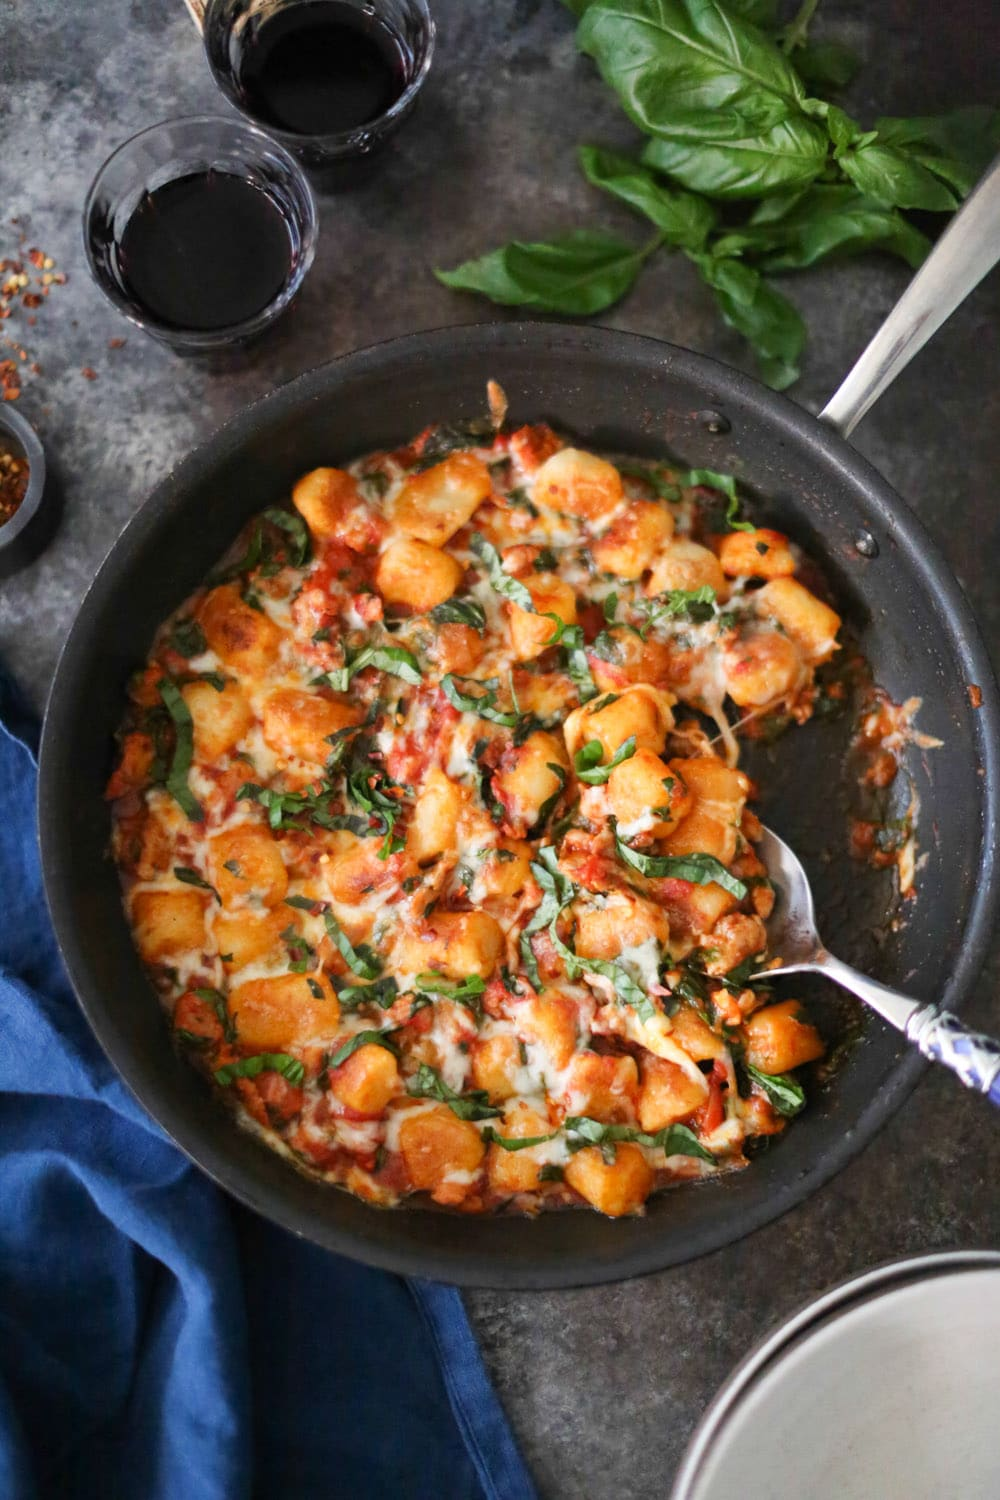 Skillet Cauliflower Gnocchi with Sausage and Spinach